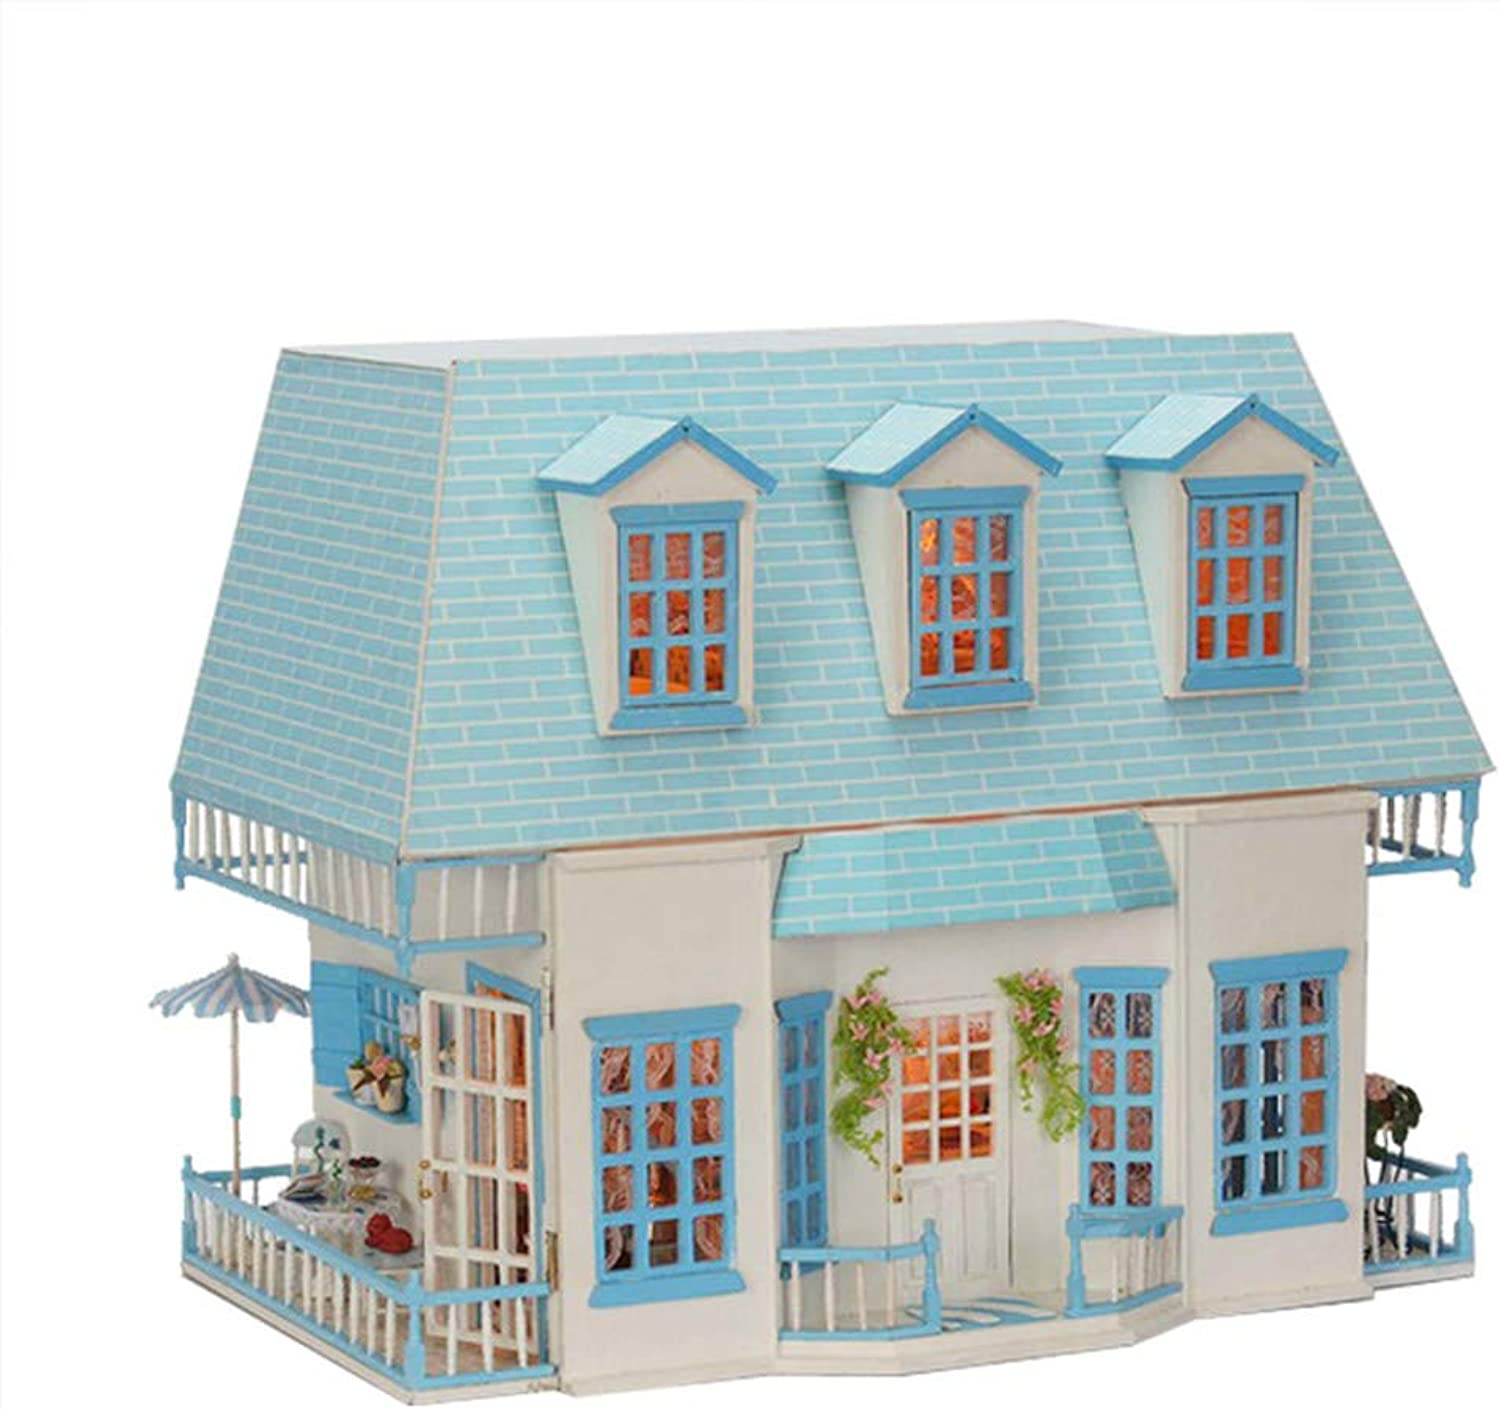 DIY Dollhouse Kit & Toys, 3D-Holzpuppen Haus Mbel (Music Movement + LED-Licht), Handmade Doll House Creative Birthday Gift, Sunshine Island